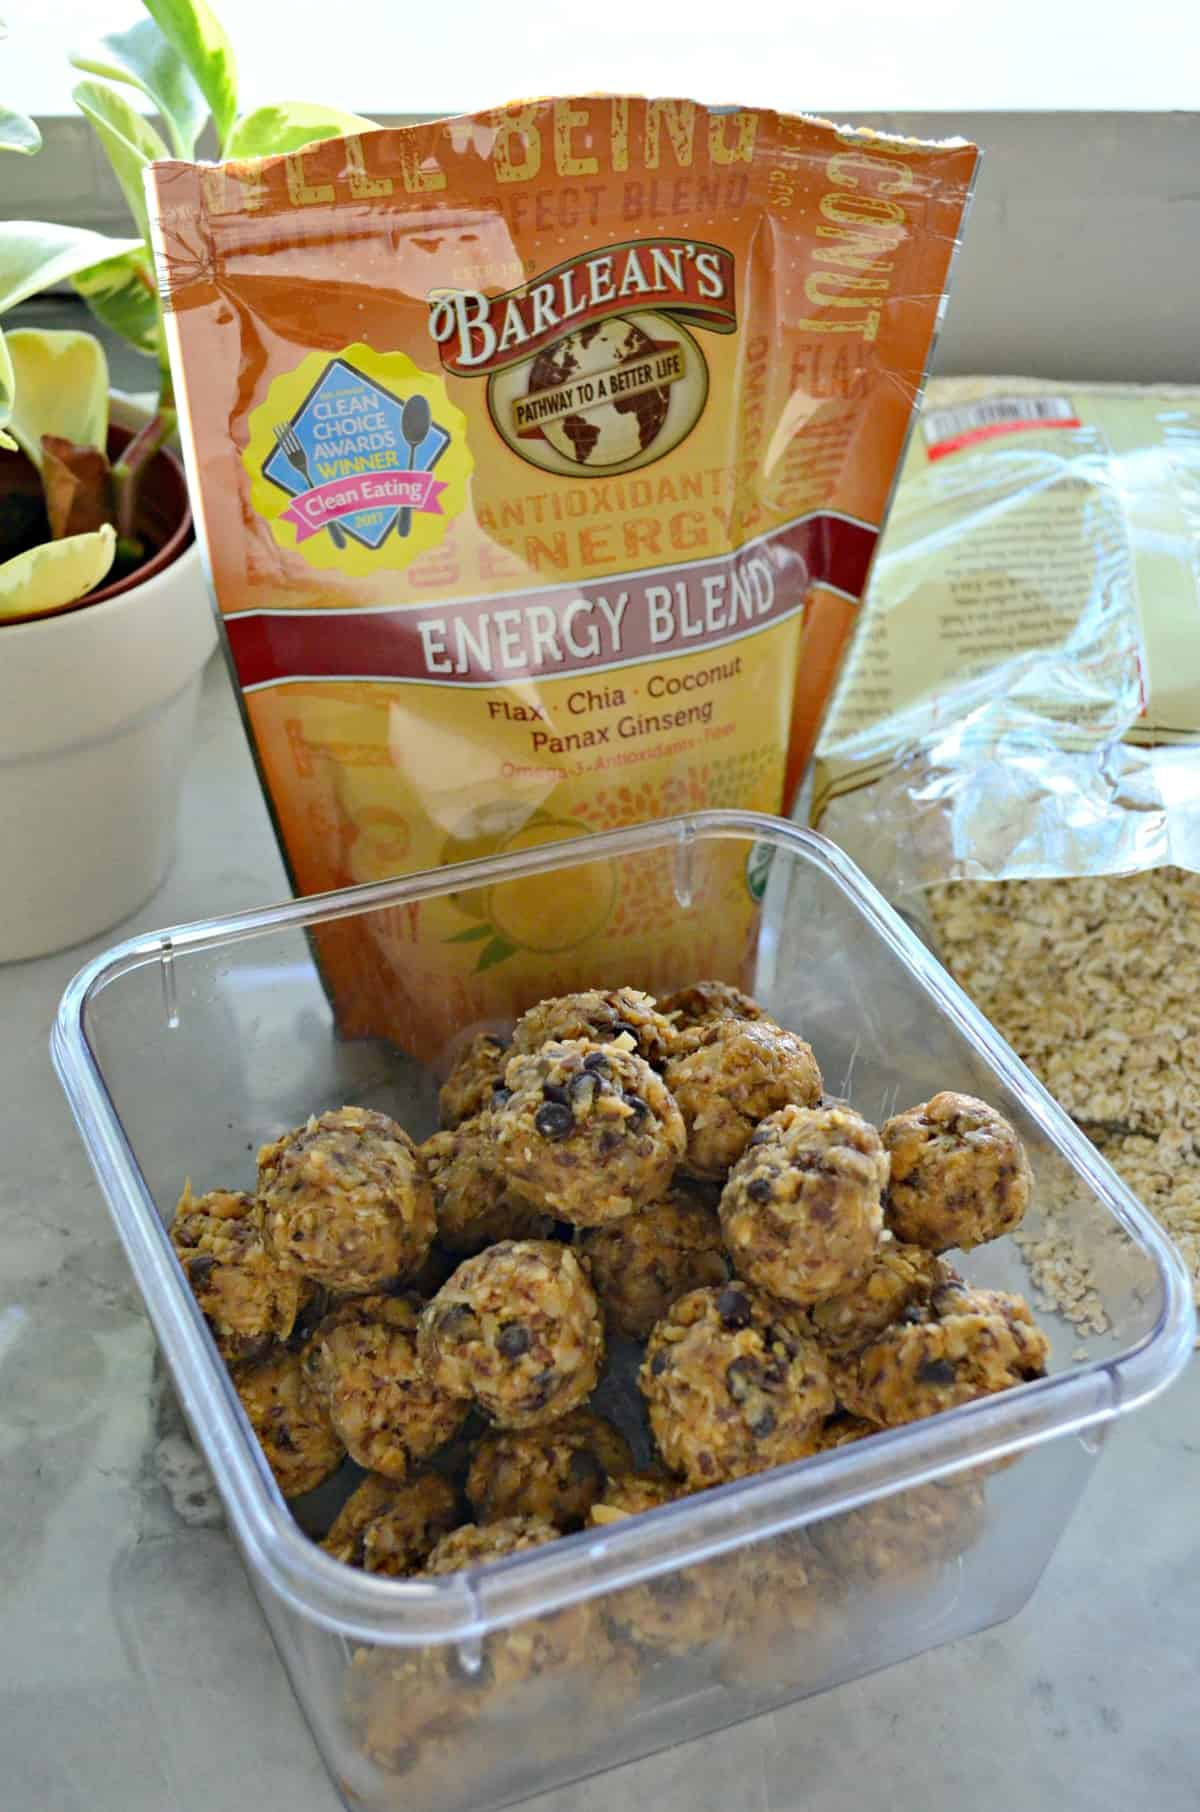 Peanut Butter Chocolate Chip Protein Balls in container on countertop in front of Barlean's Energy Blend.